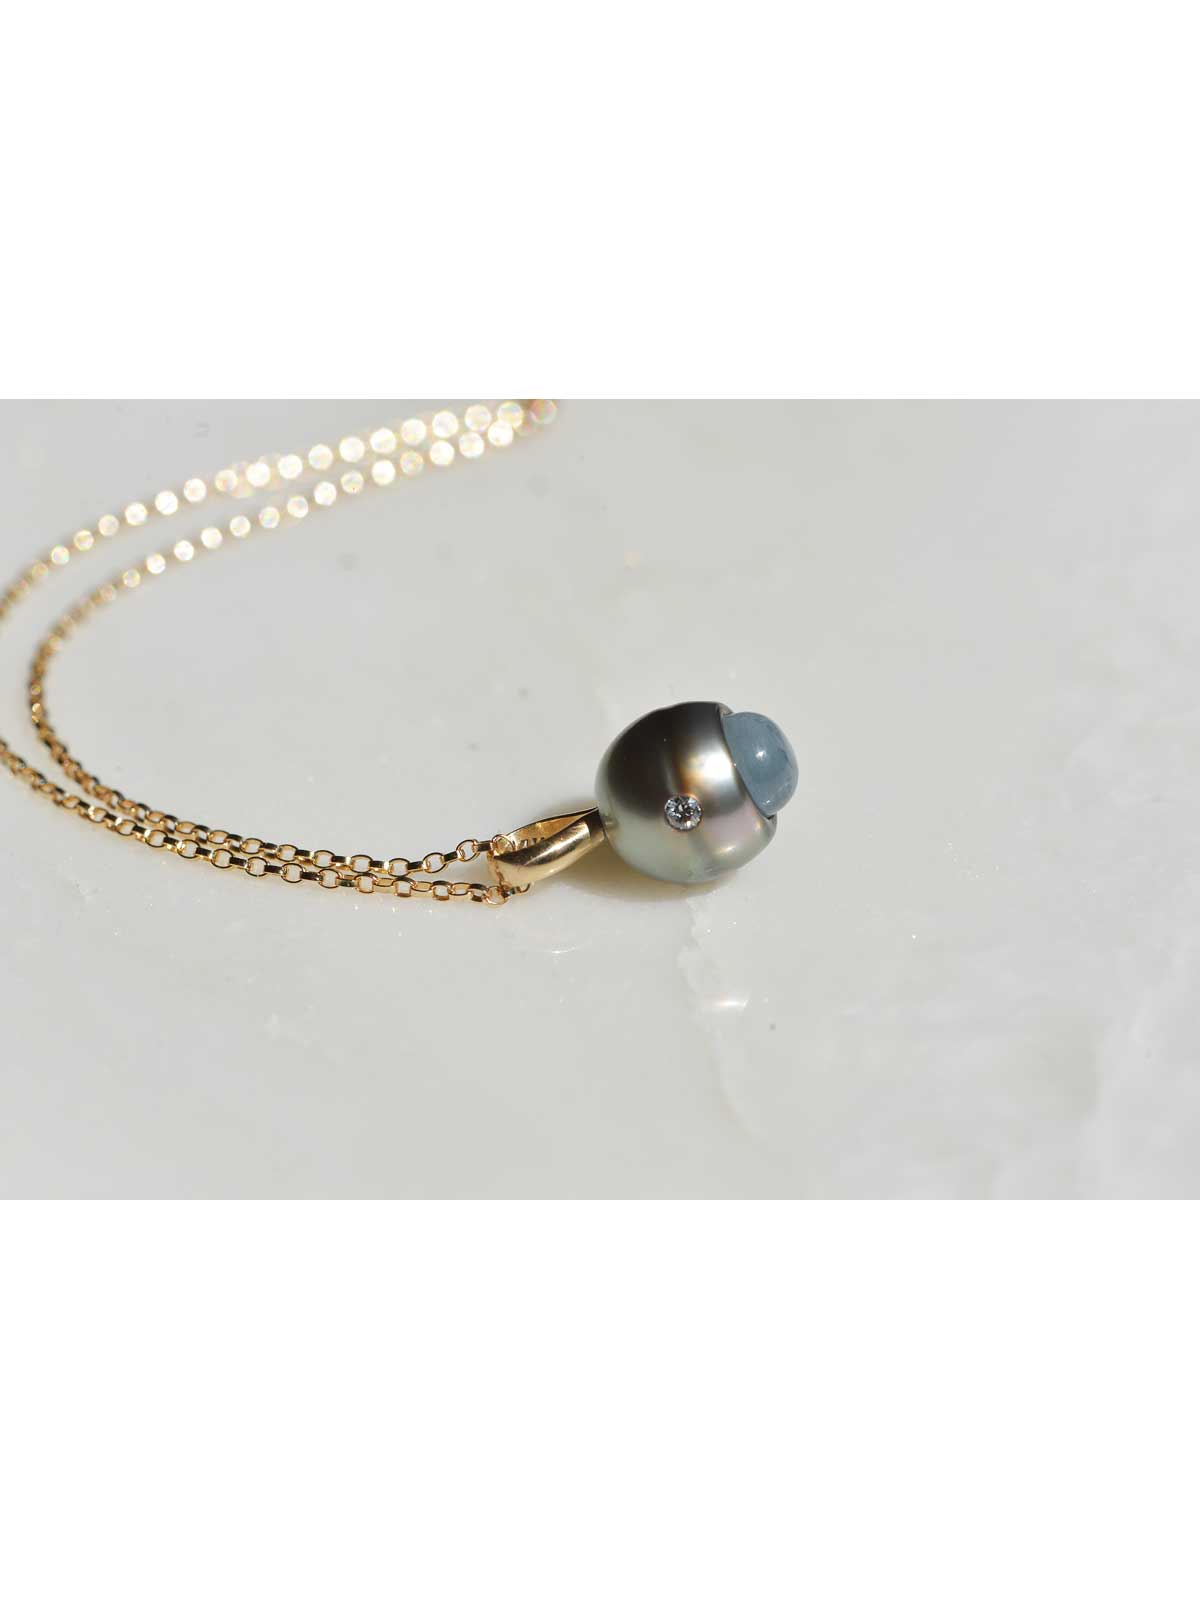 ETERNITY Pendant tahitian Pearl Aquamarine Diamond 14K yellow gold